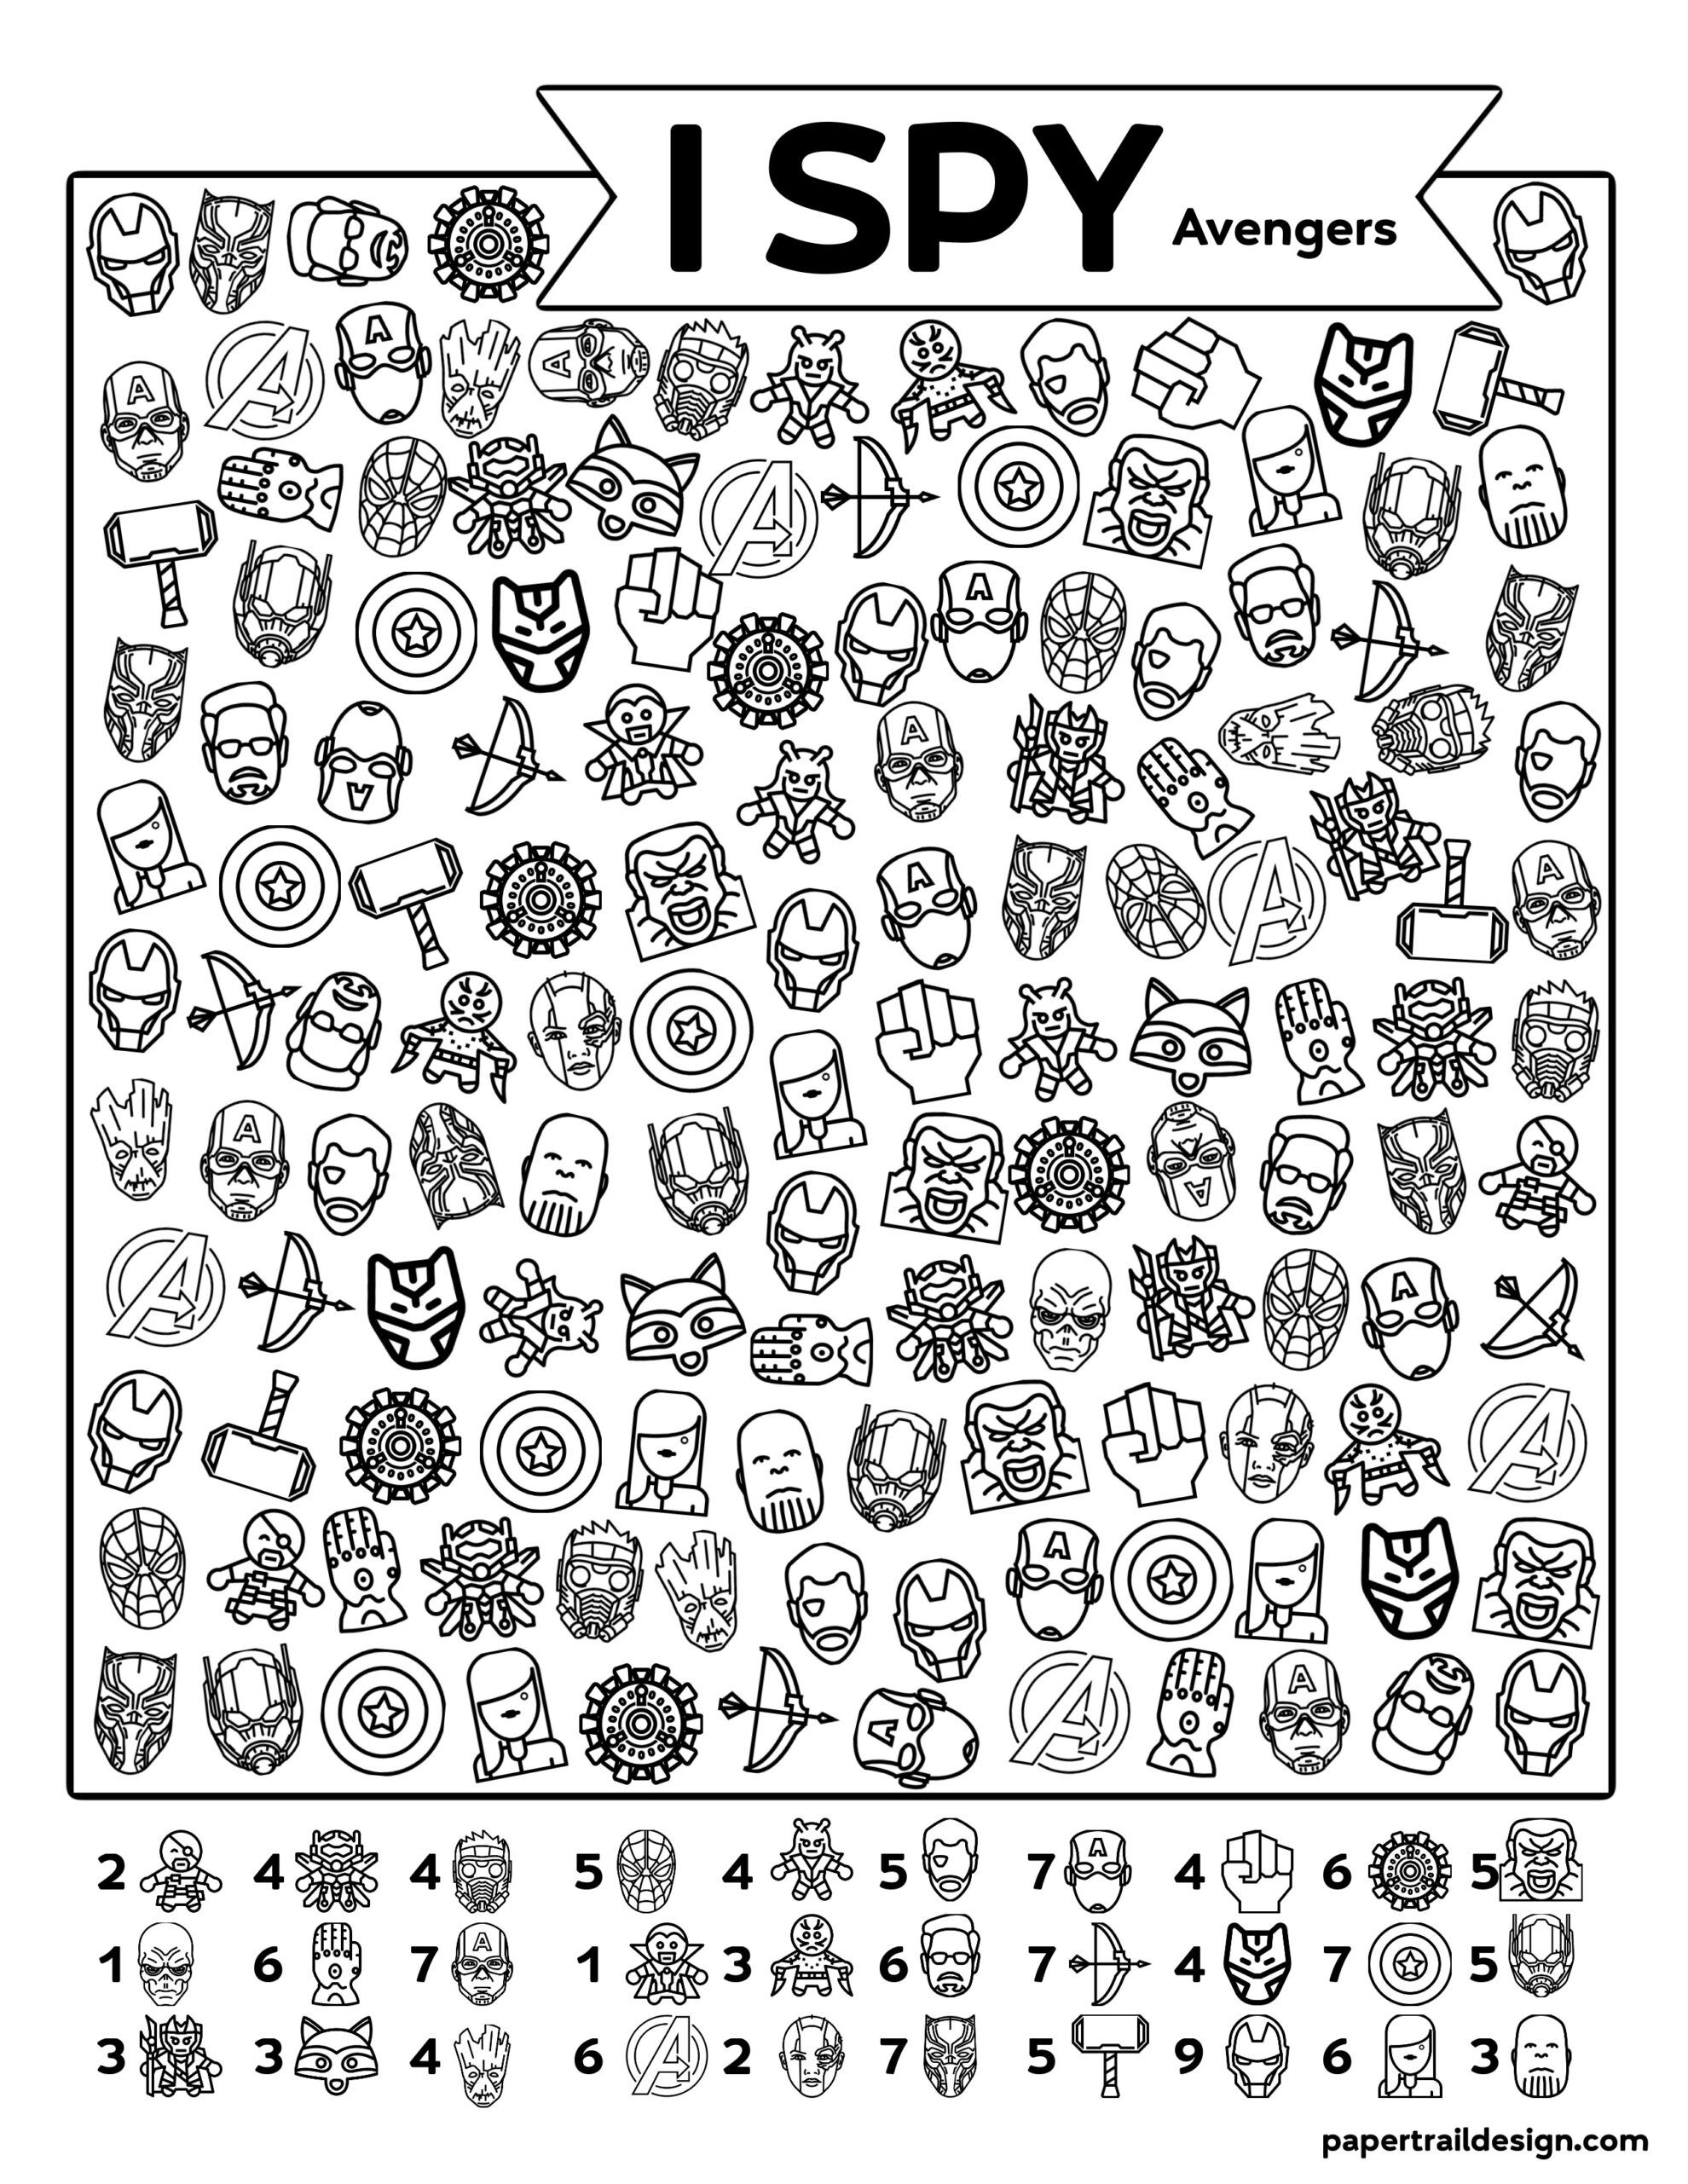 Free Printable I Spy Avengers Activity